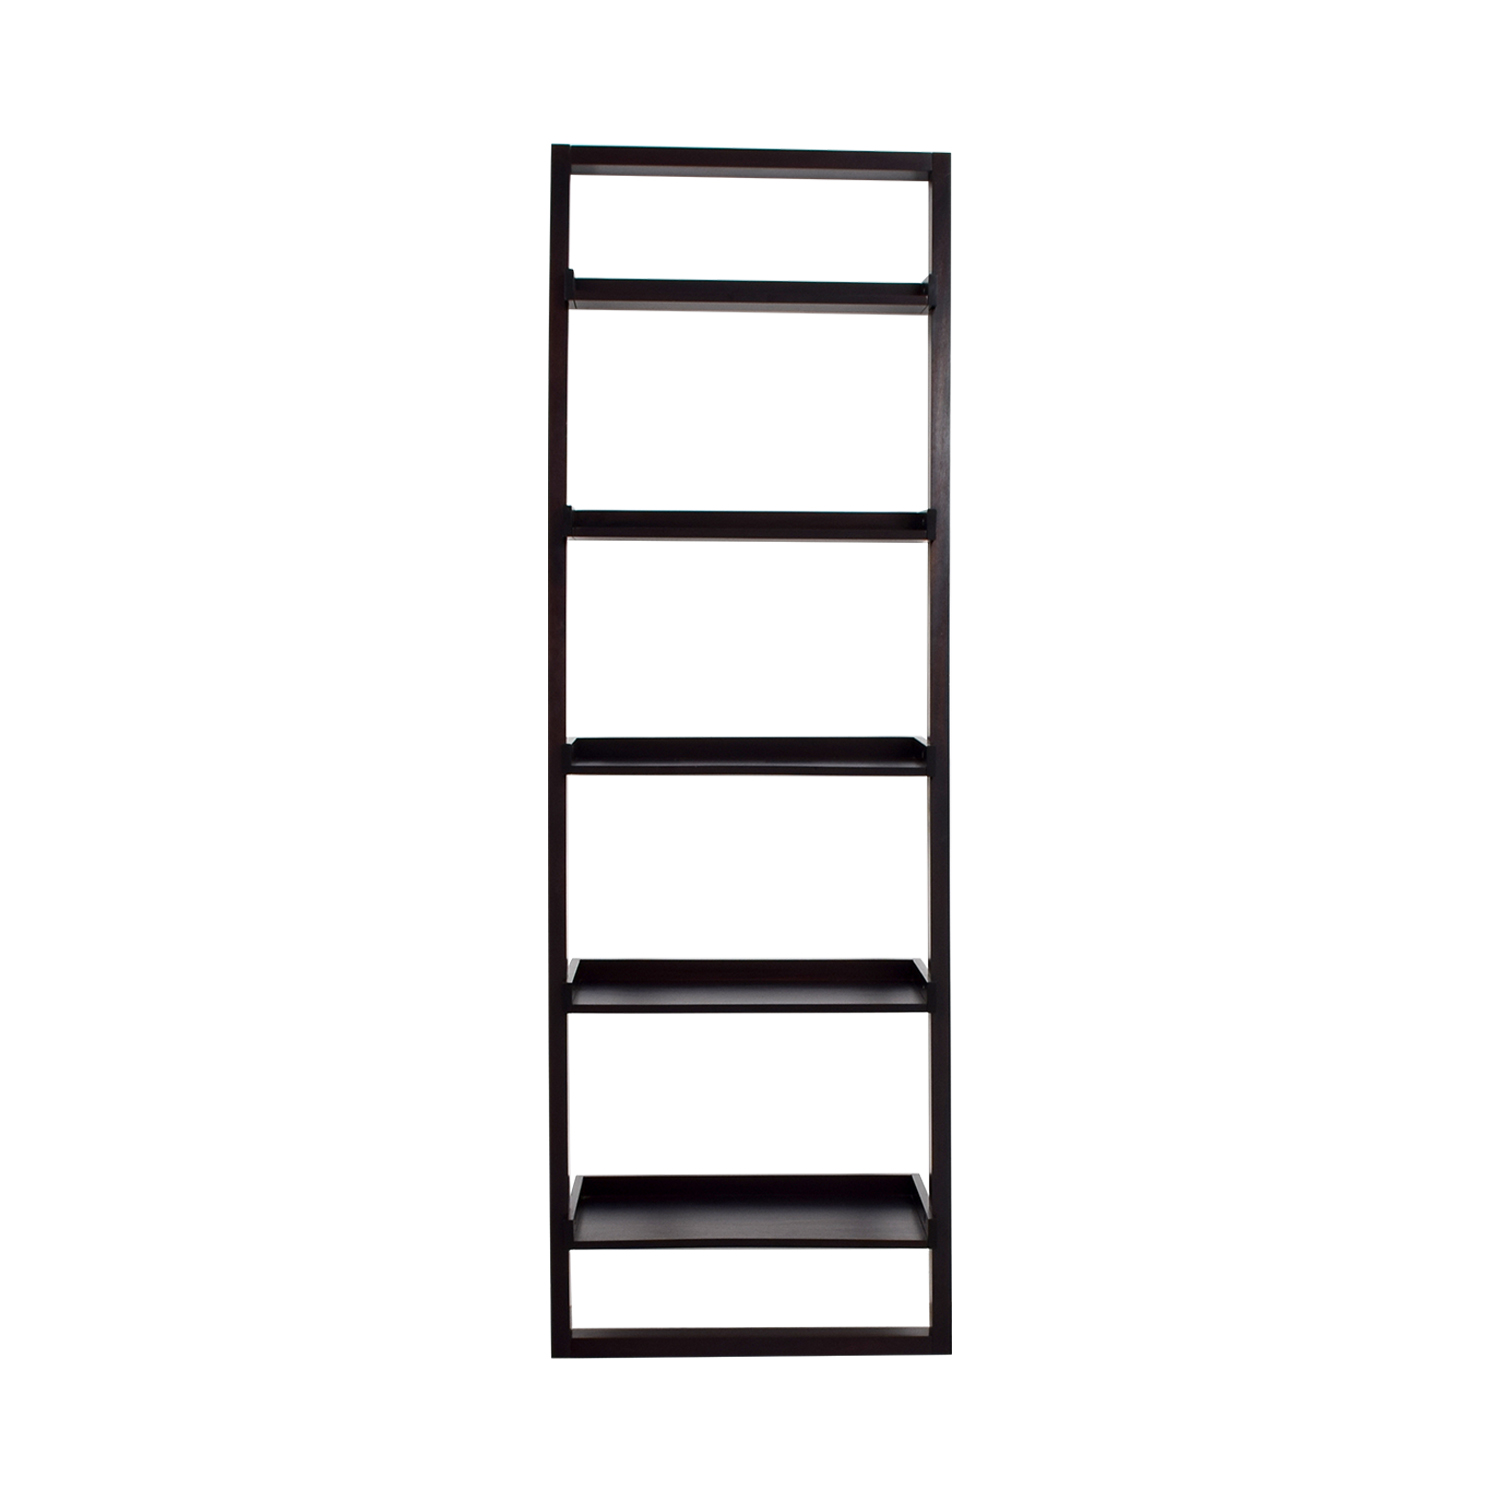 buy Crate & Barrel Crate & Barrel Leaning Ladder Bookshelf online